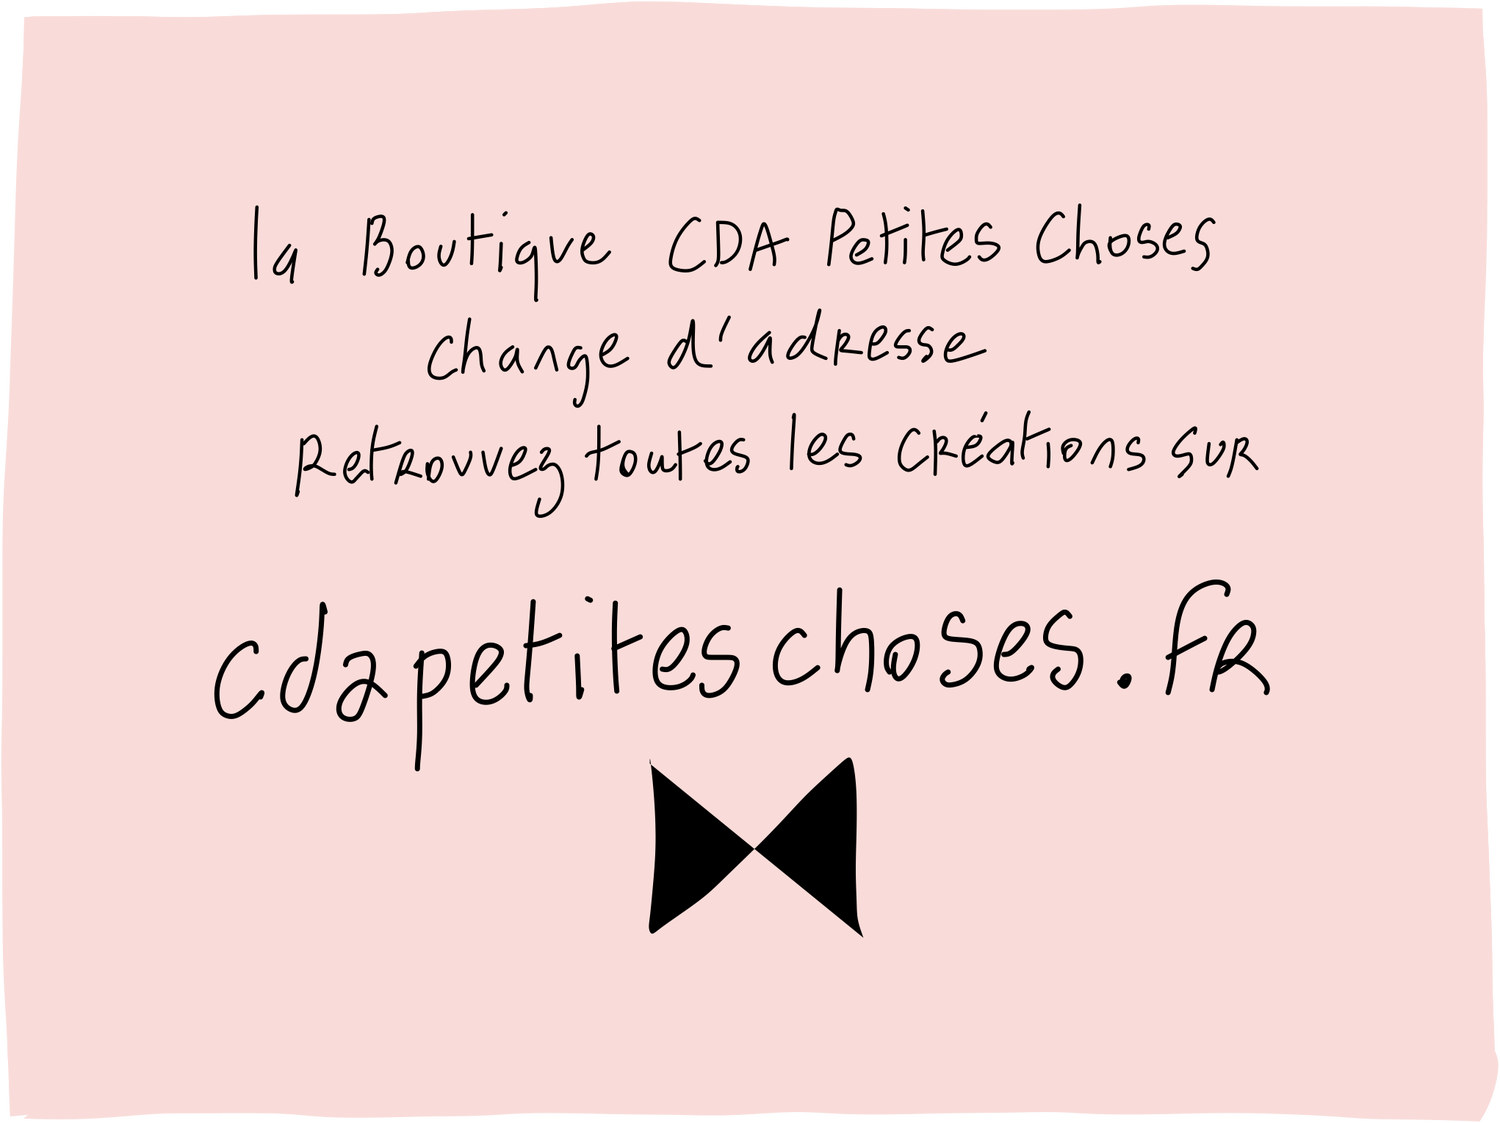 Image of Changement d'adresse